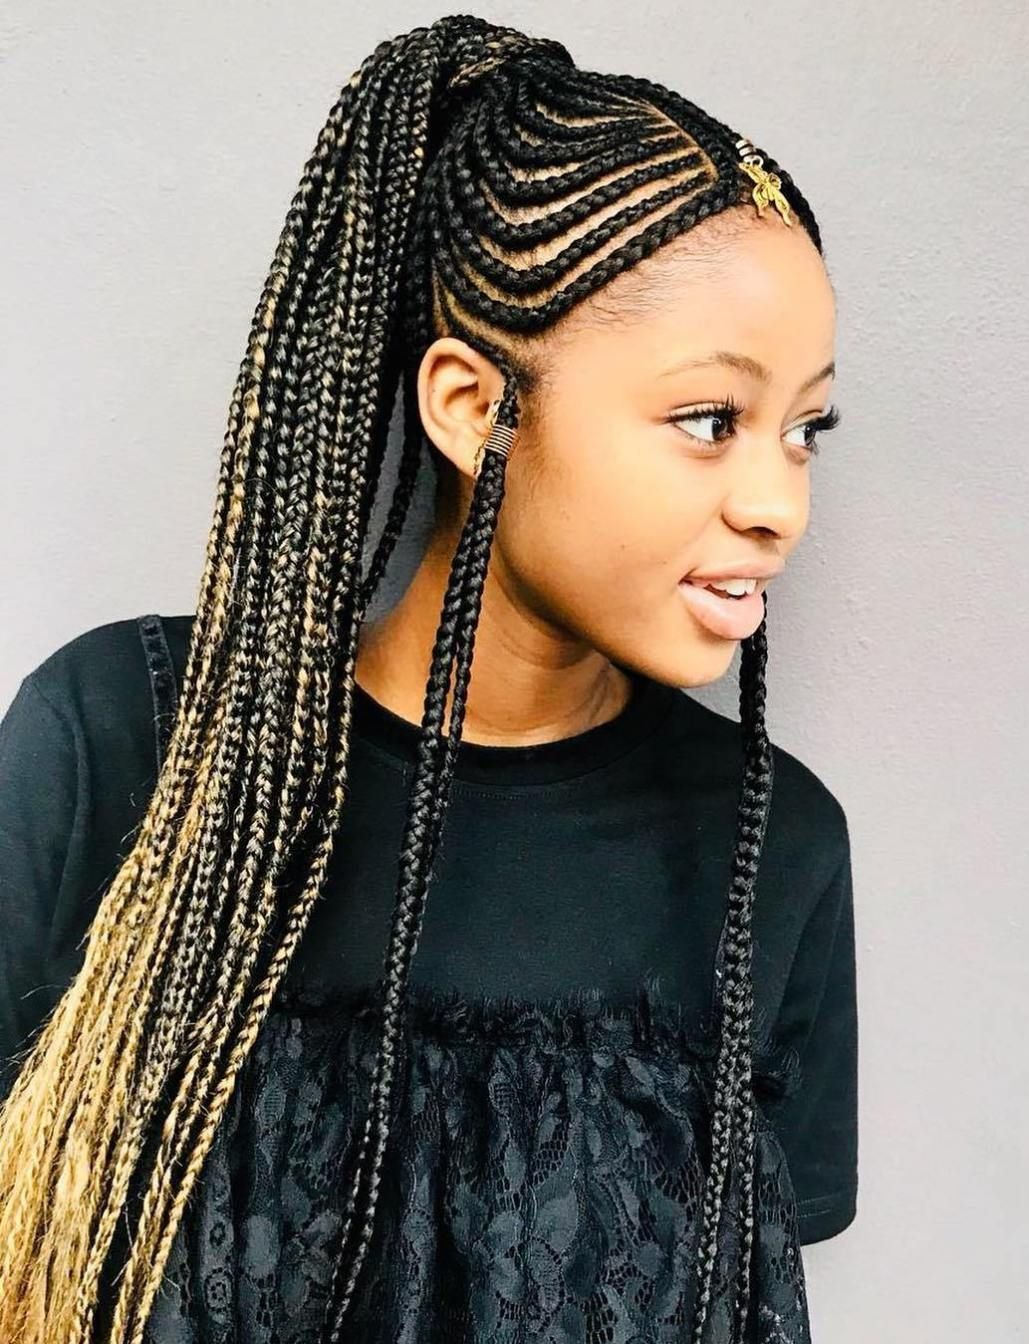 The Best 20 Amazing Fulani Braids For Women Of All Ages In 2019 Pictures